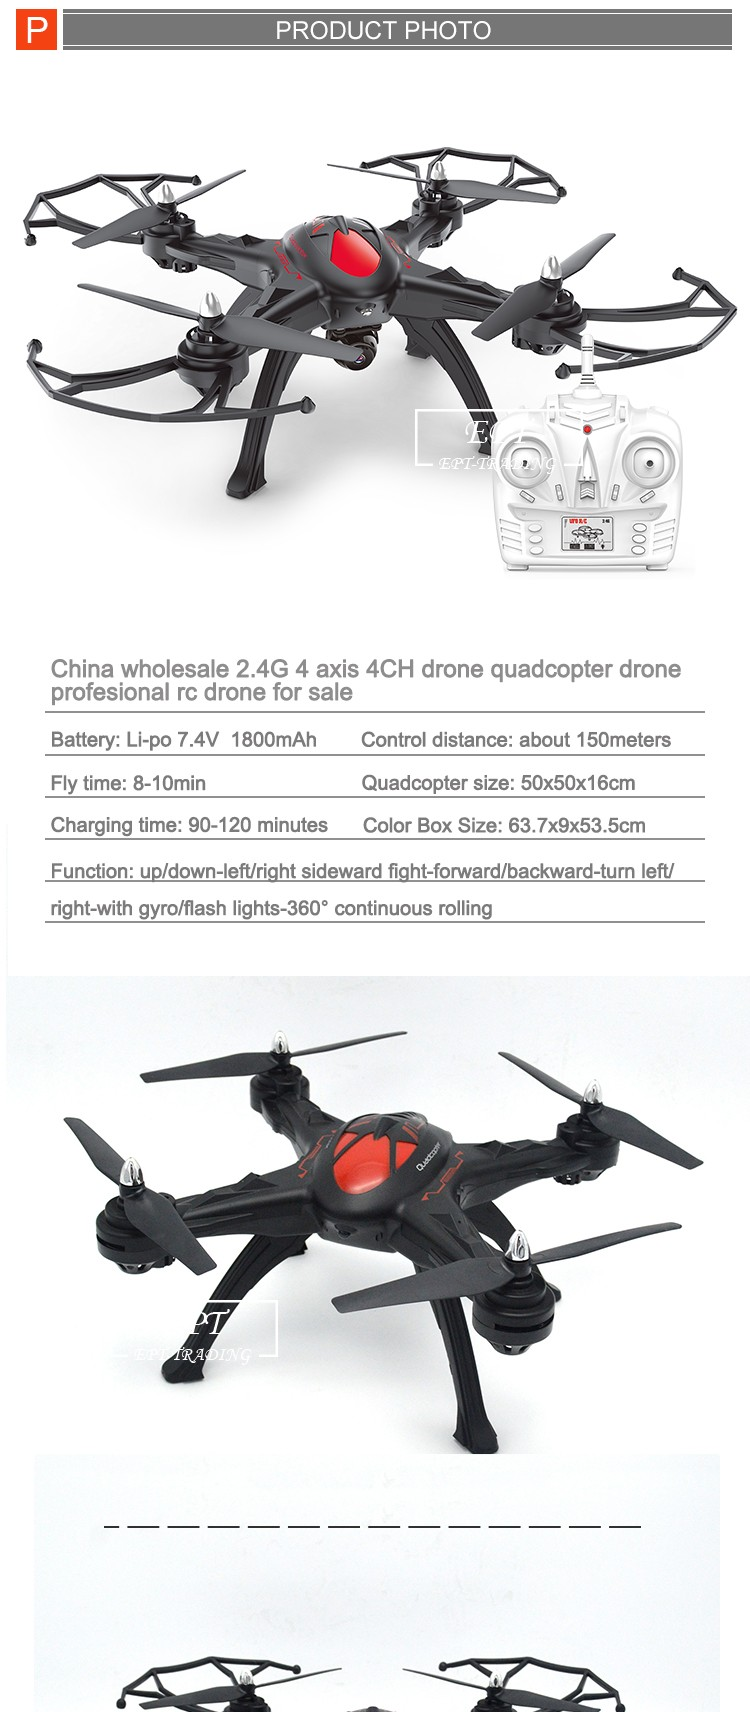 China wholesale 2.4G 4 axis 4CH drone quadcopter drone profesional rc drone for sale